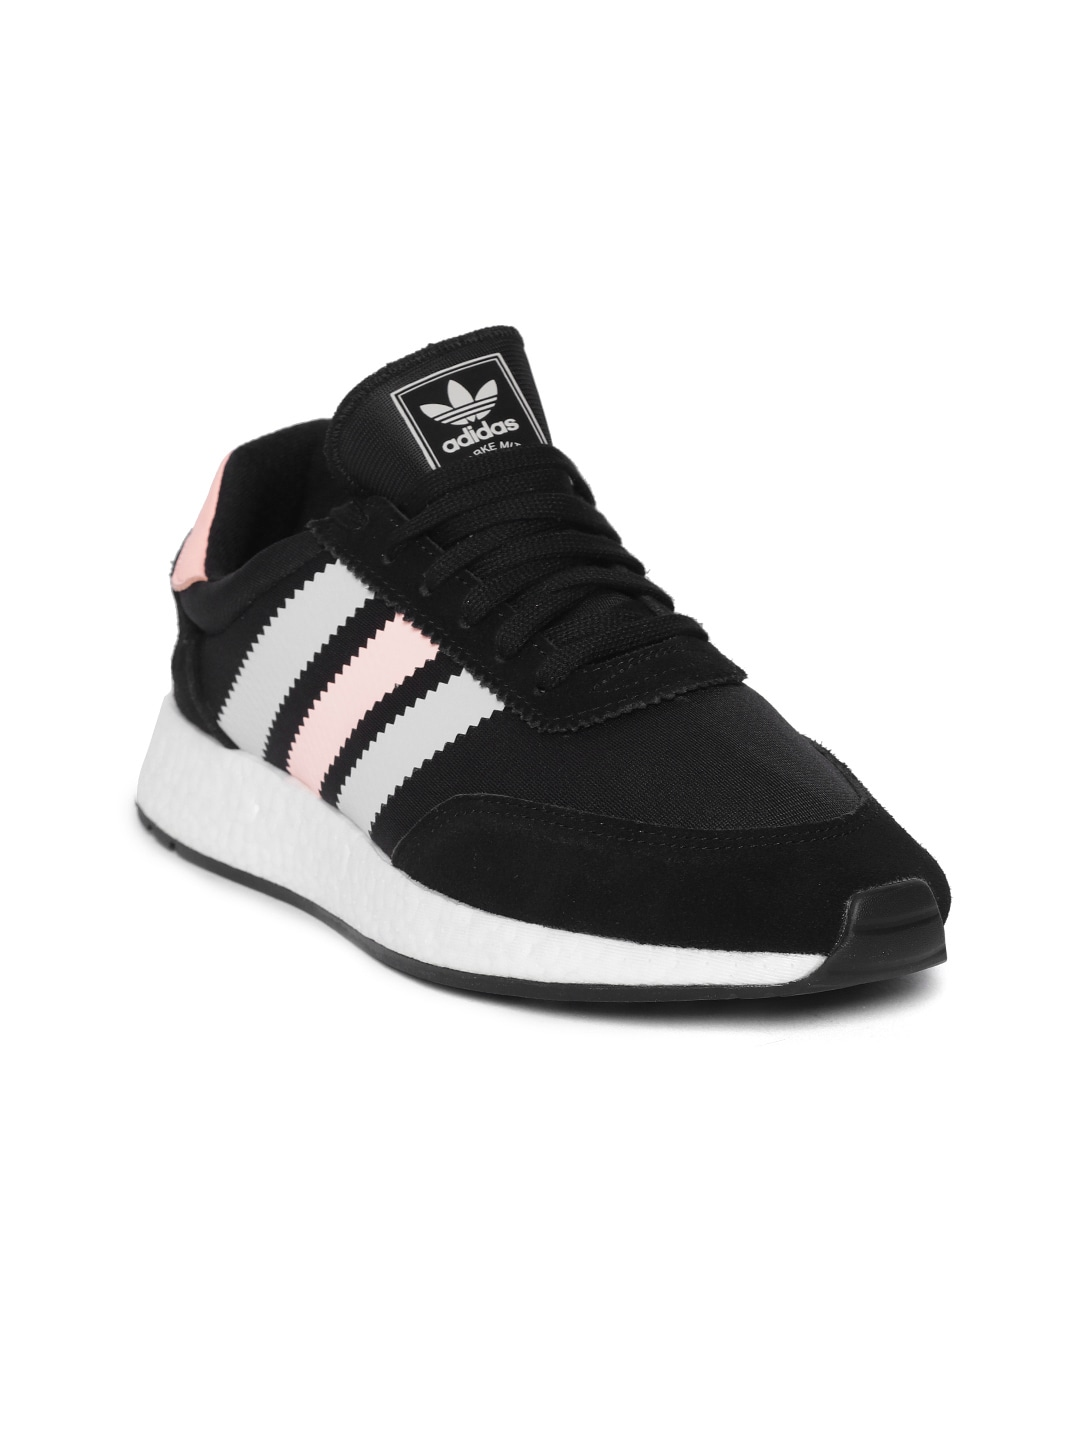 watch c688f 95193 Adidas Originals - Buy Adidas Originals Products Online   Myntra